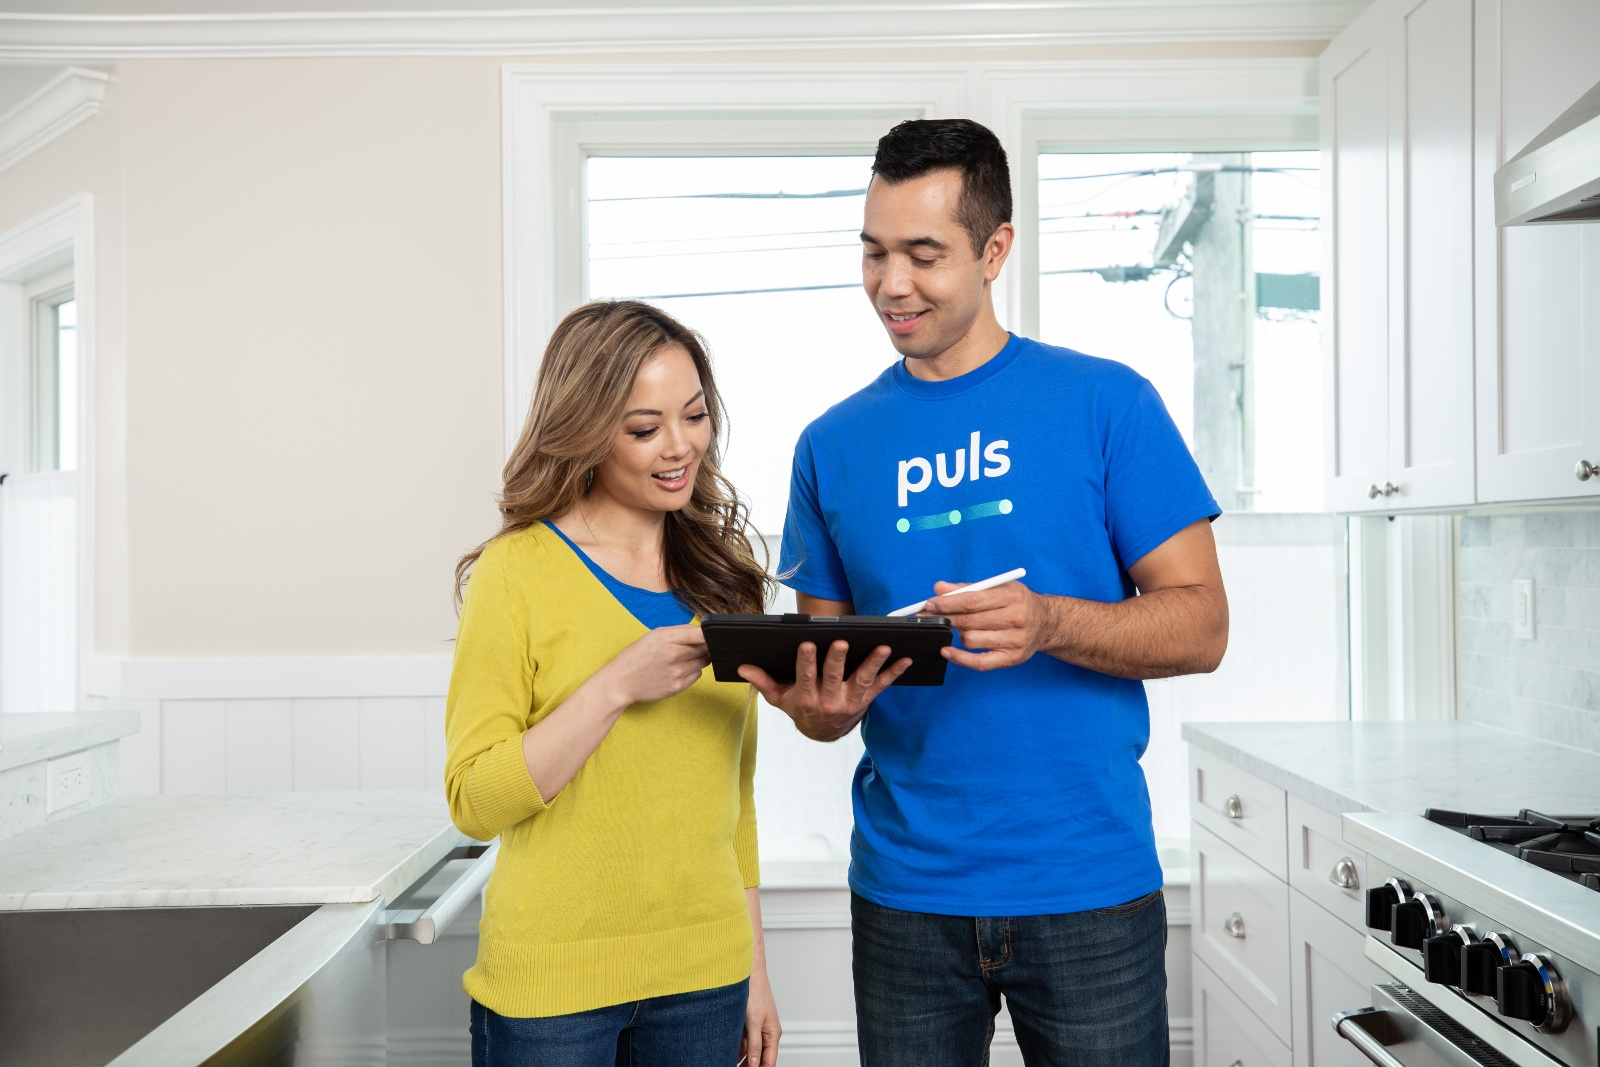 Puls appliance repair services